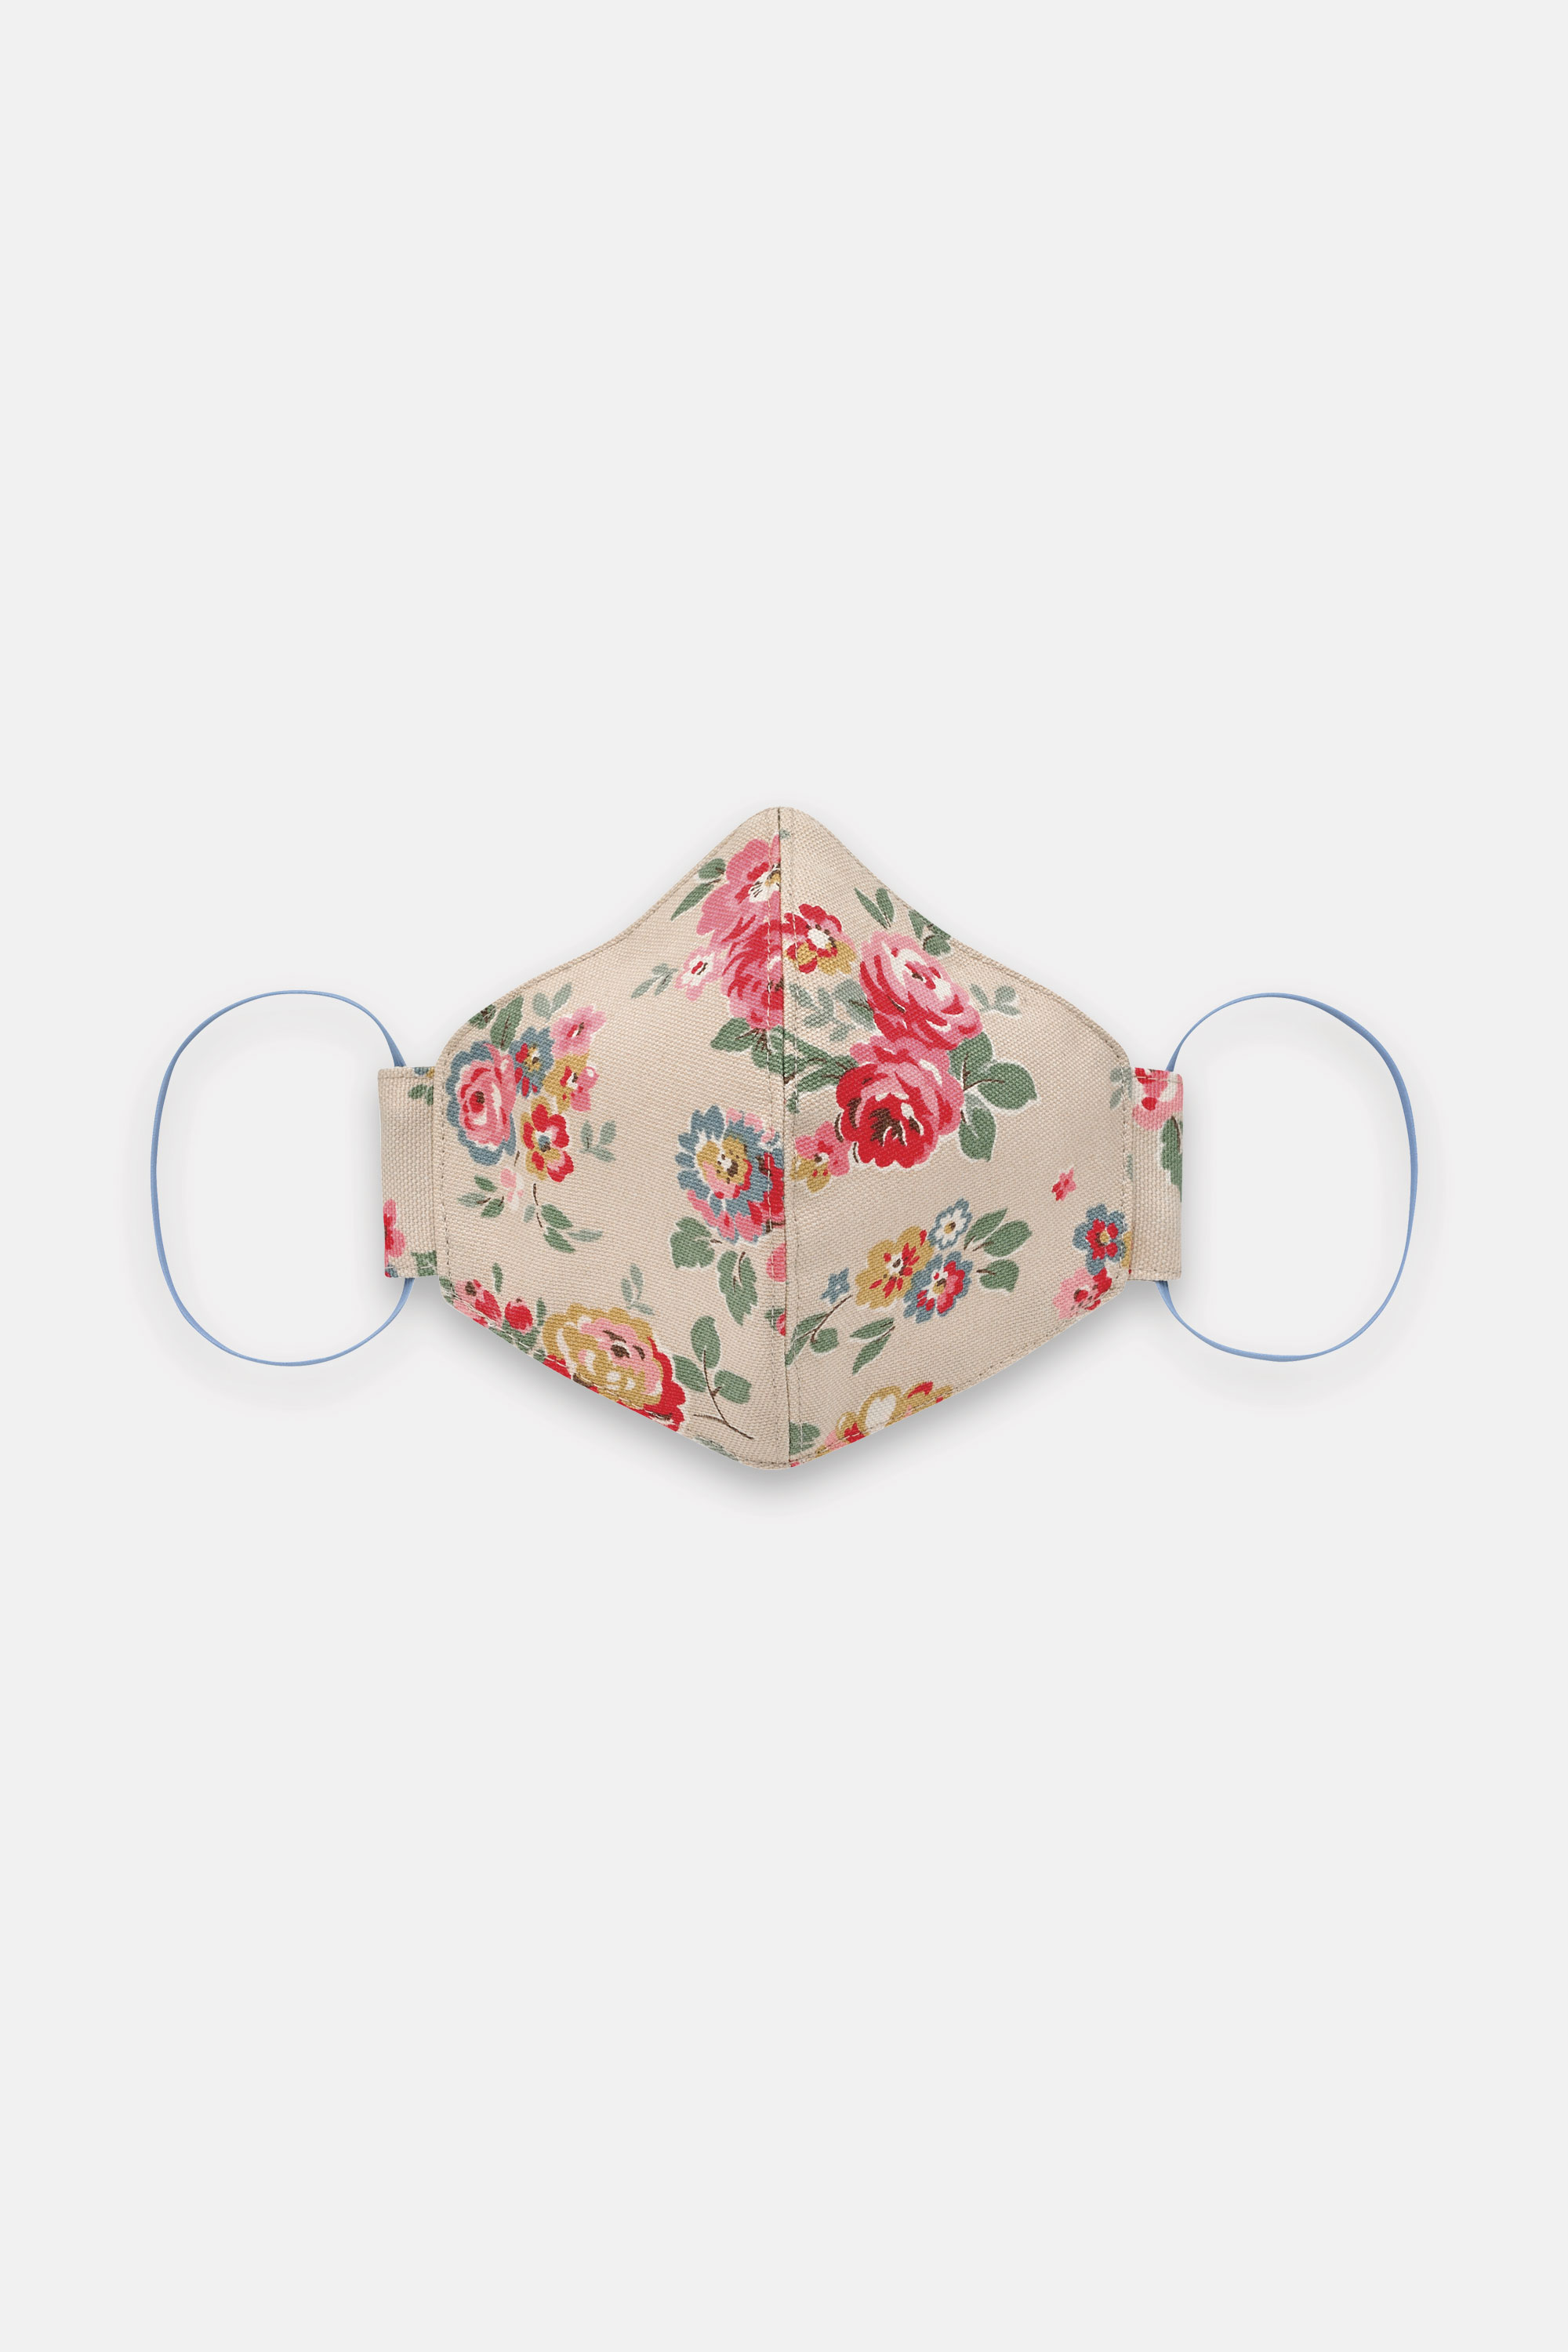 Cath Kidston Adult Face Covering in Stone, Wells Rose, 100% Cotton